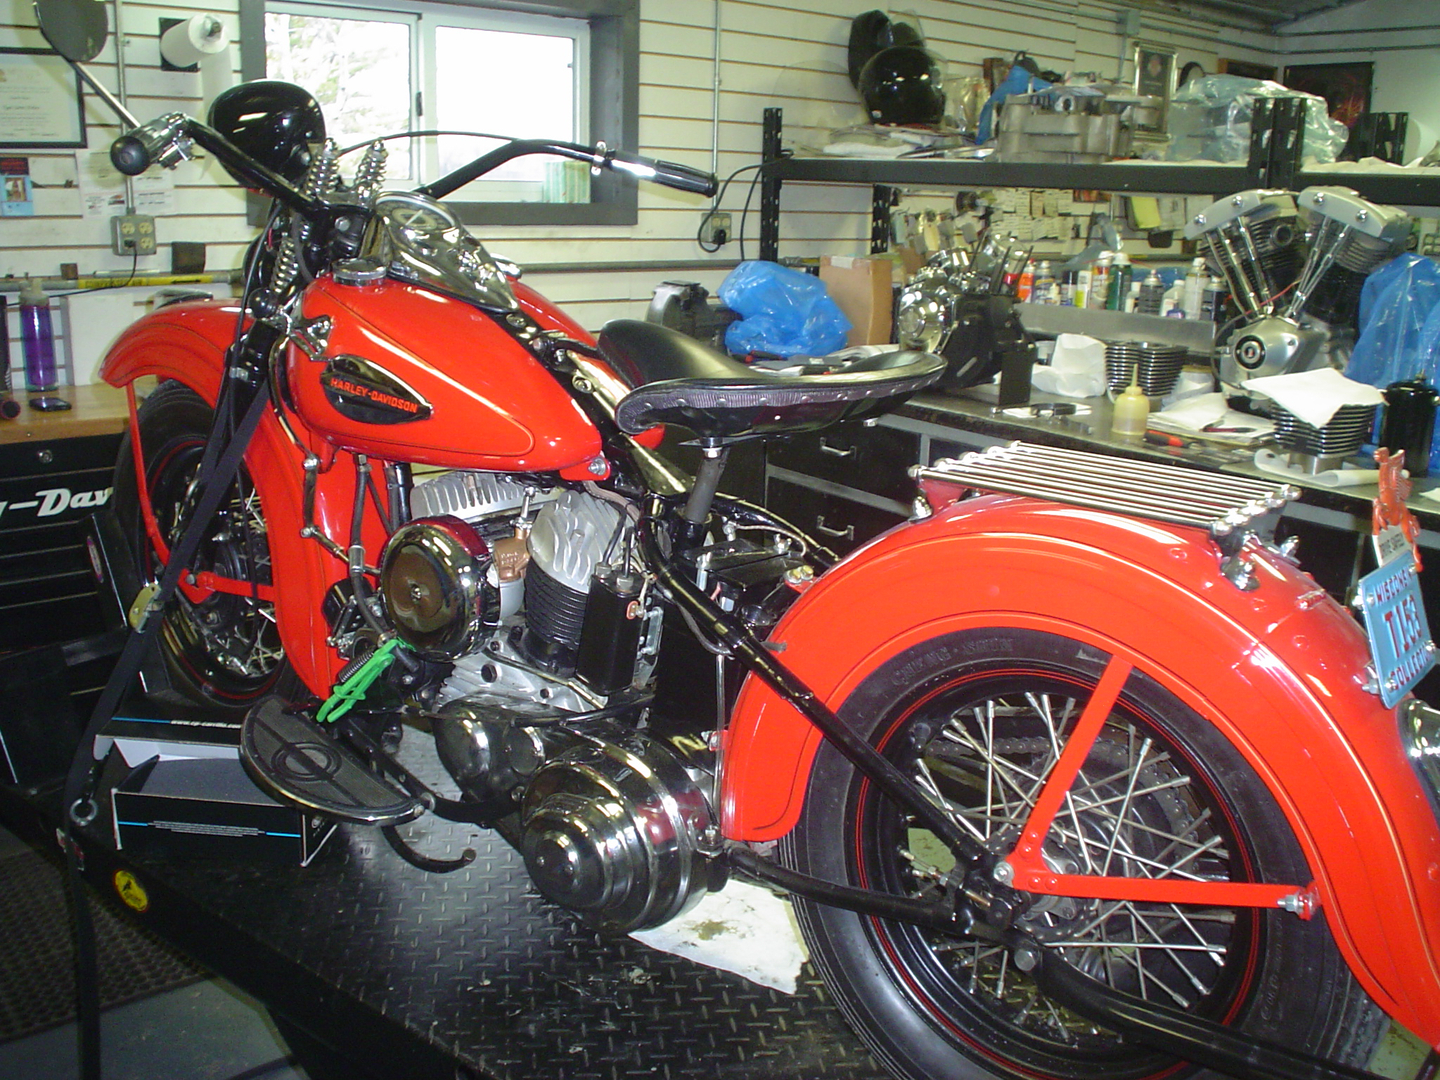 Hoban Brothers Motorcycle Service and Repair Shop